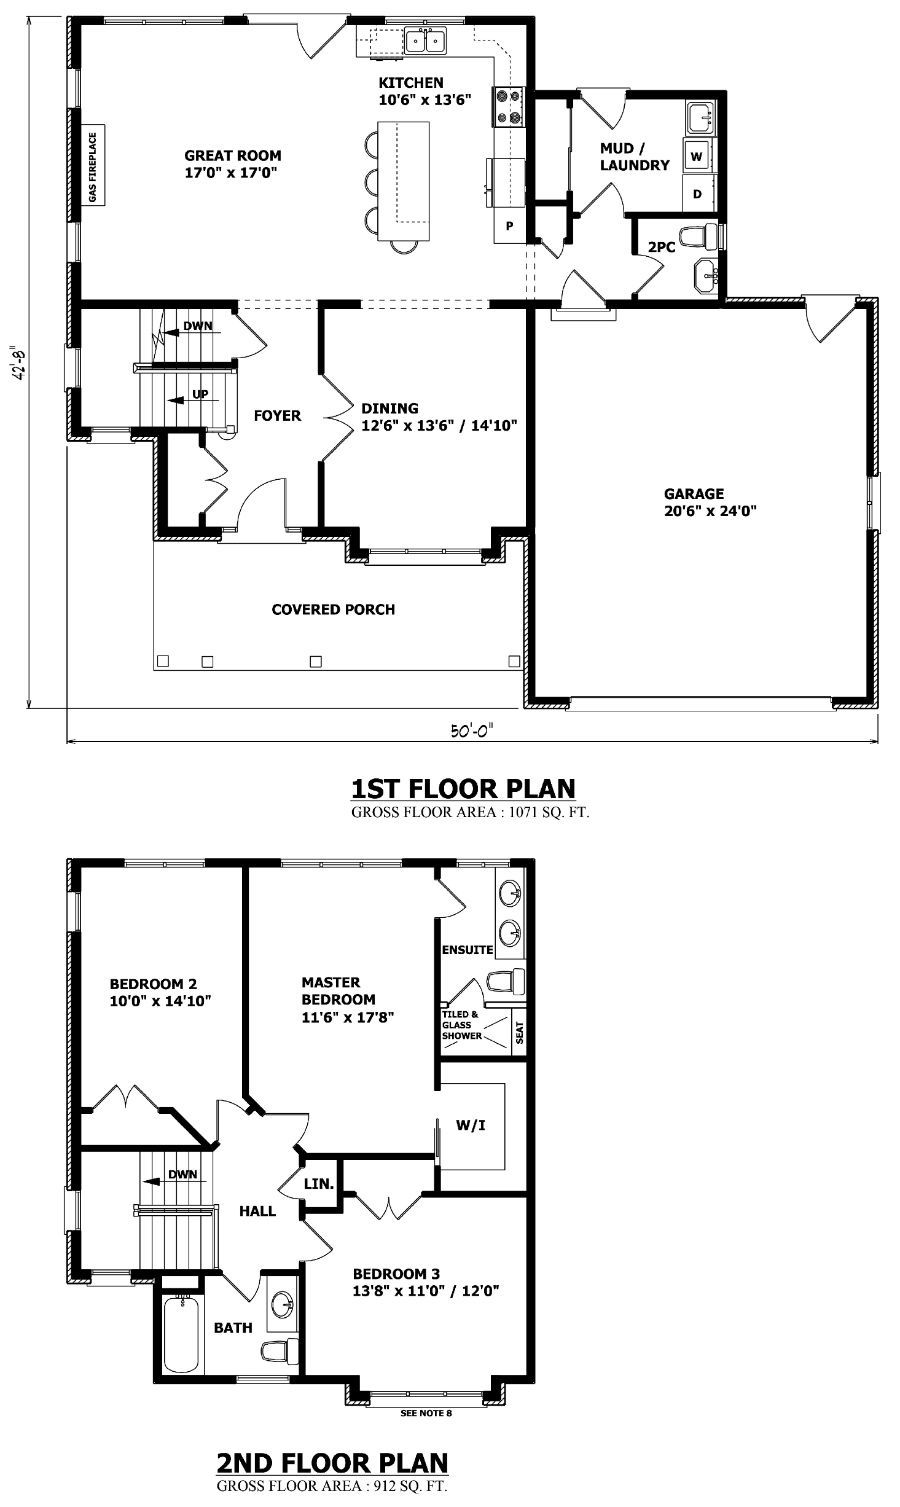 Needs Sizing Down For Us Two But Other Rooms Can Be Turned Into An Office Or A Library Two Storey House Plans Custom Home Plans Two Story House Plans